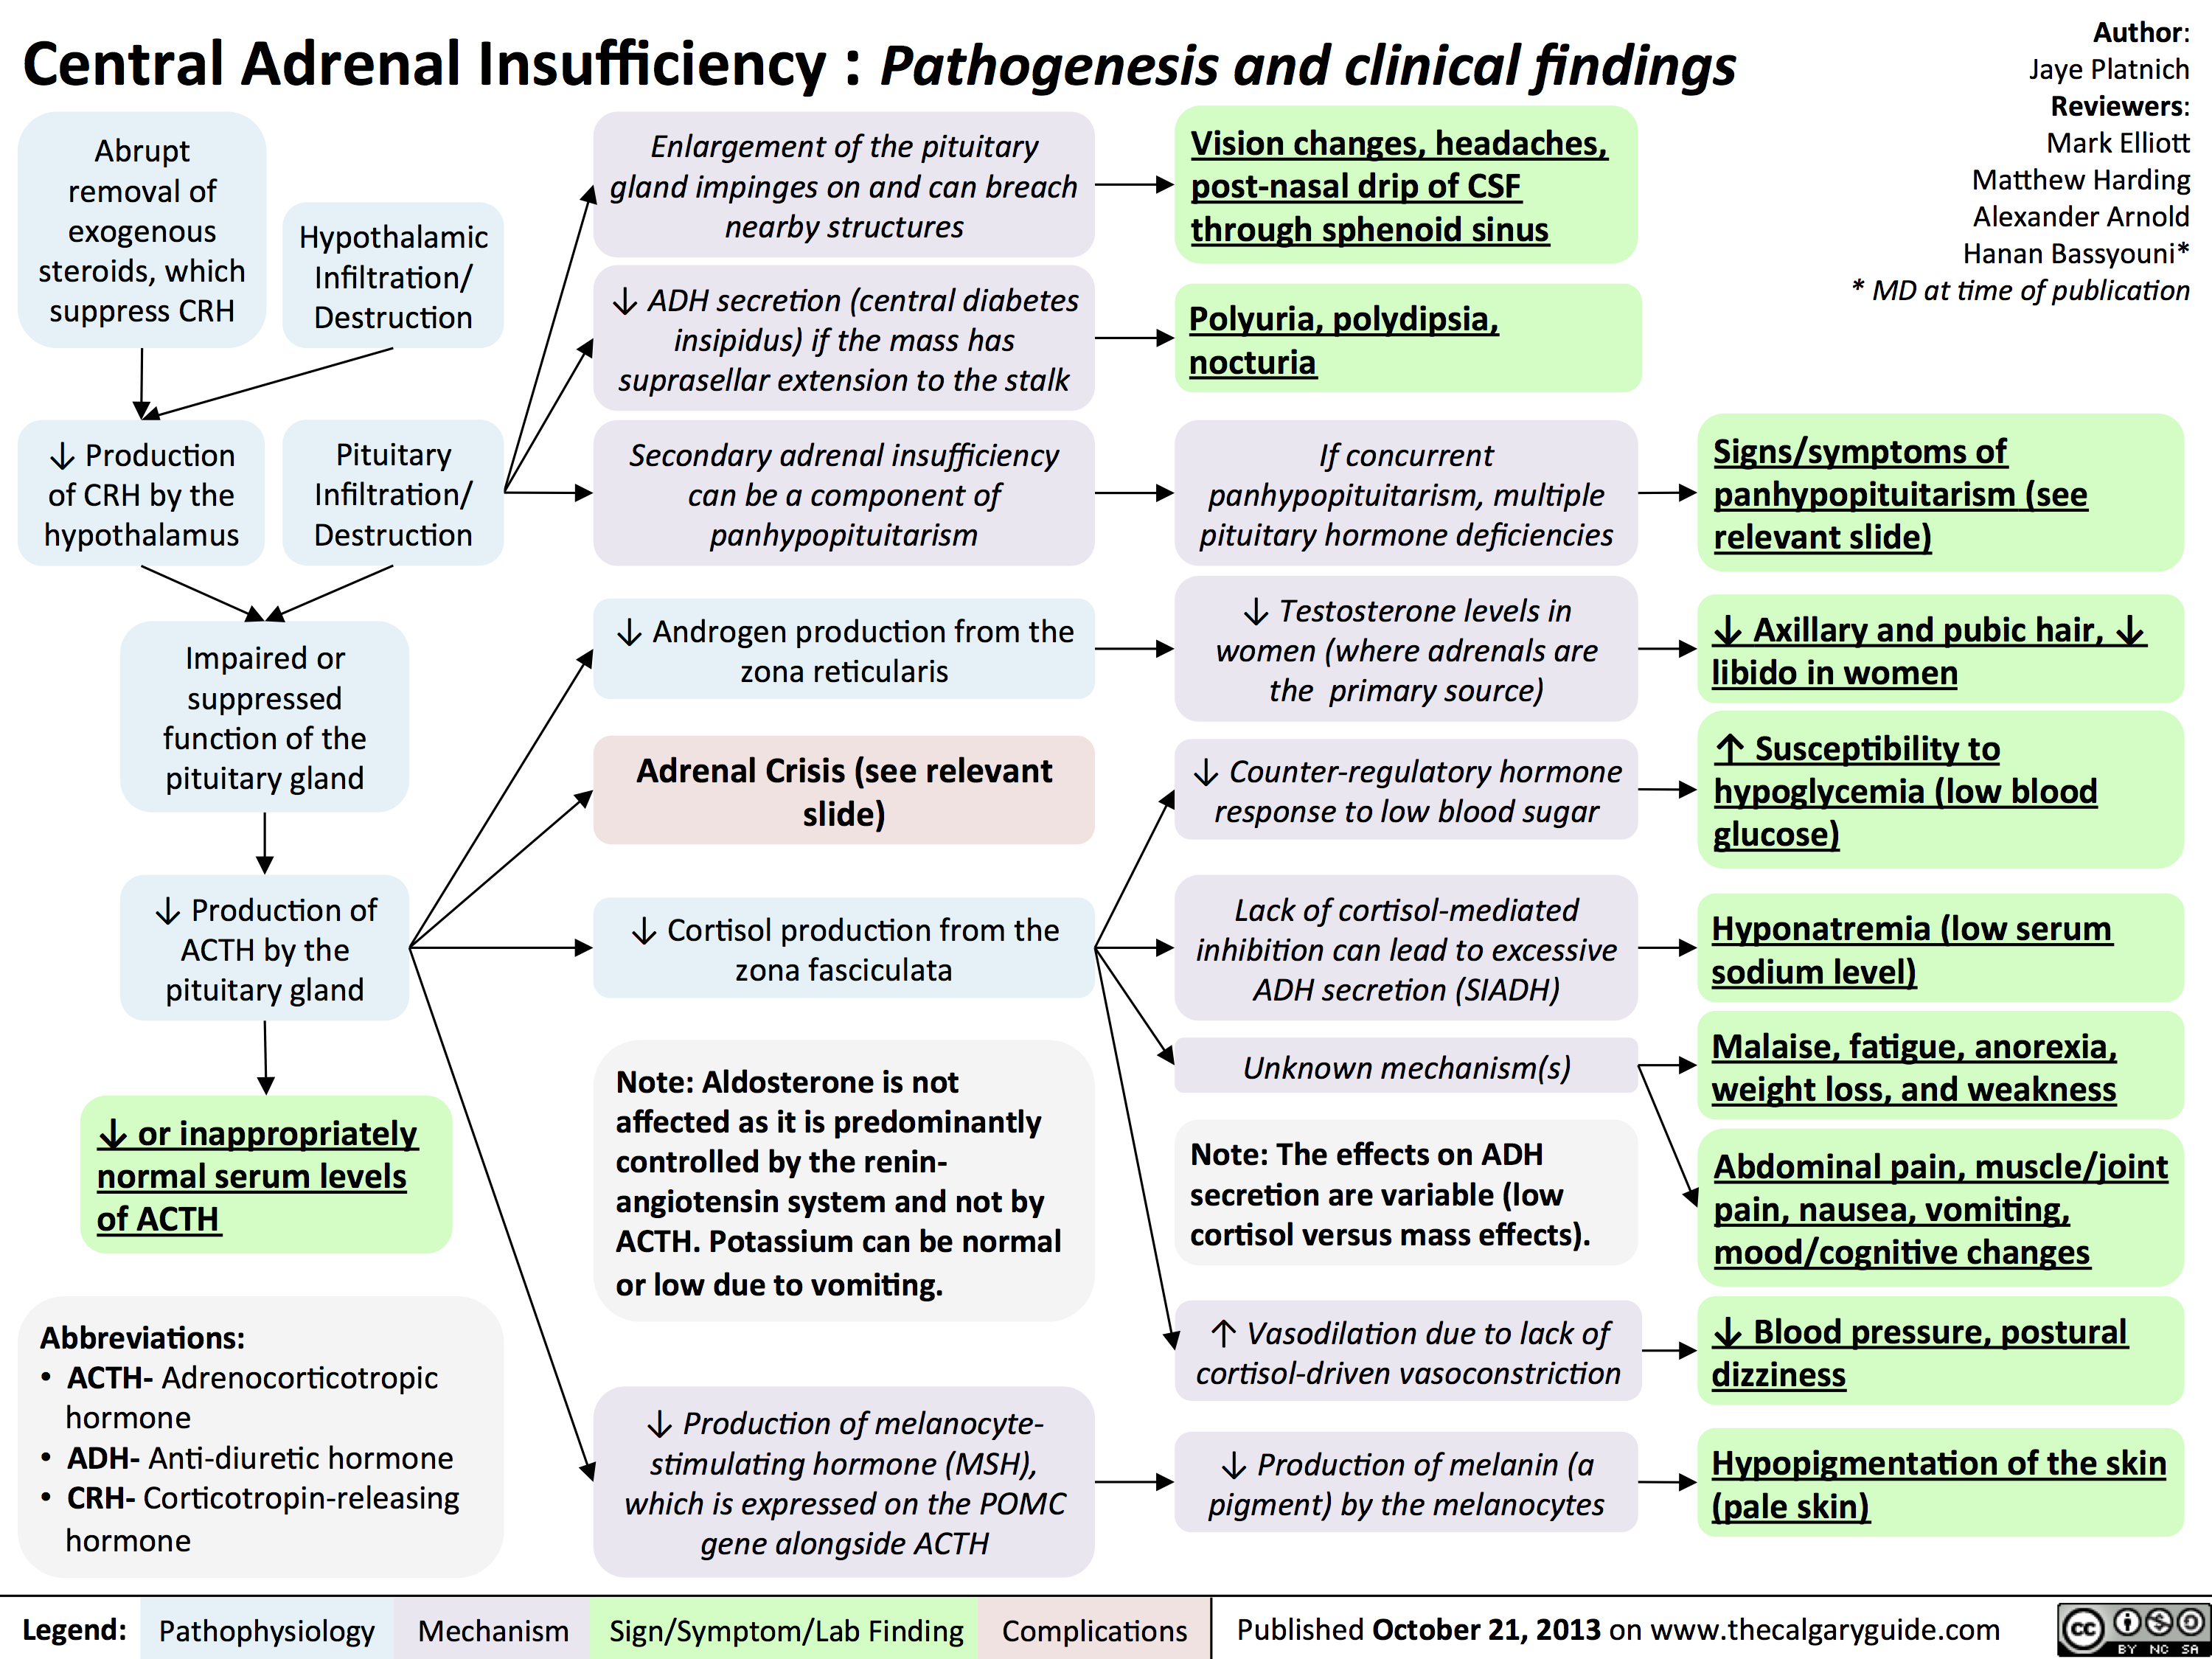 Central Adrenal Insufficiency - Pathogenesis and Clinical Findings